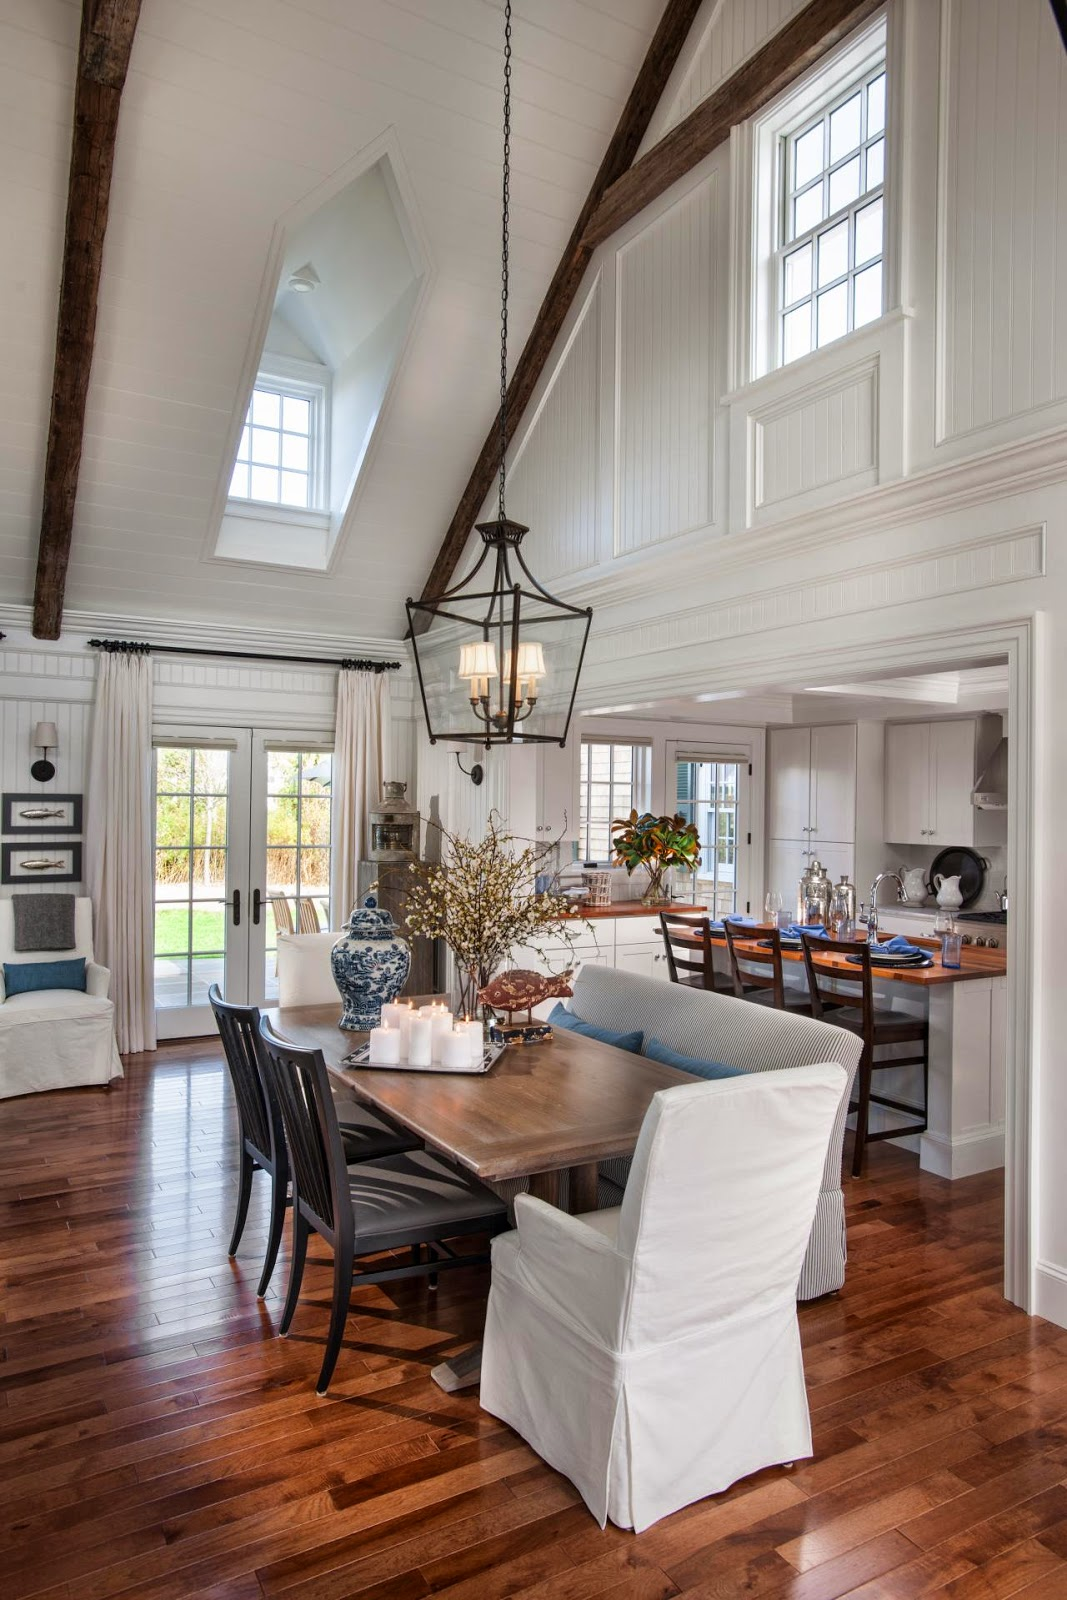 the way they did the dormer windows in the vaulted ceiling is one of my favorite features - Gray Home 2015